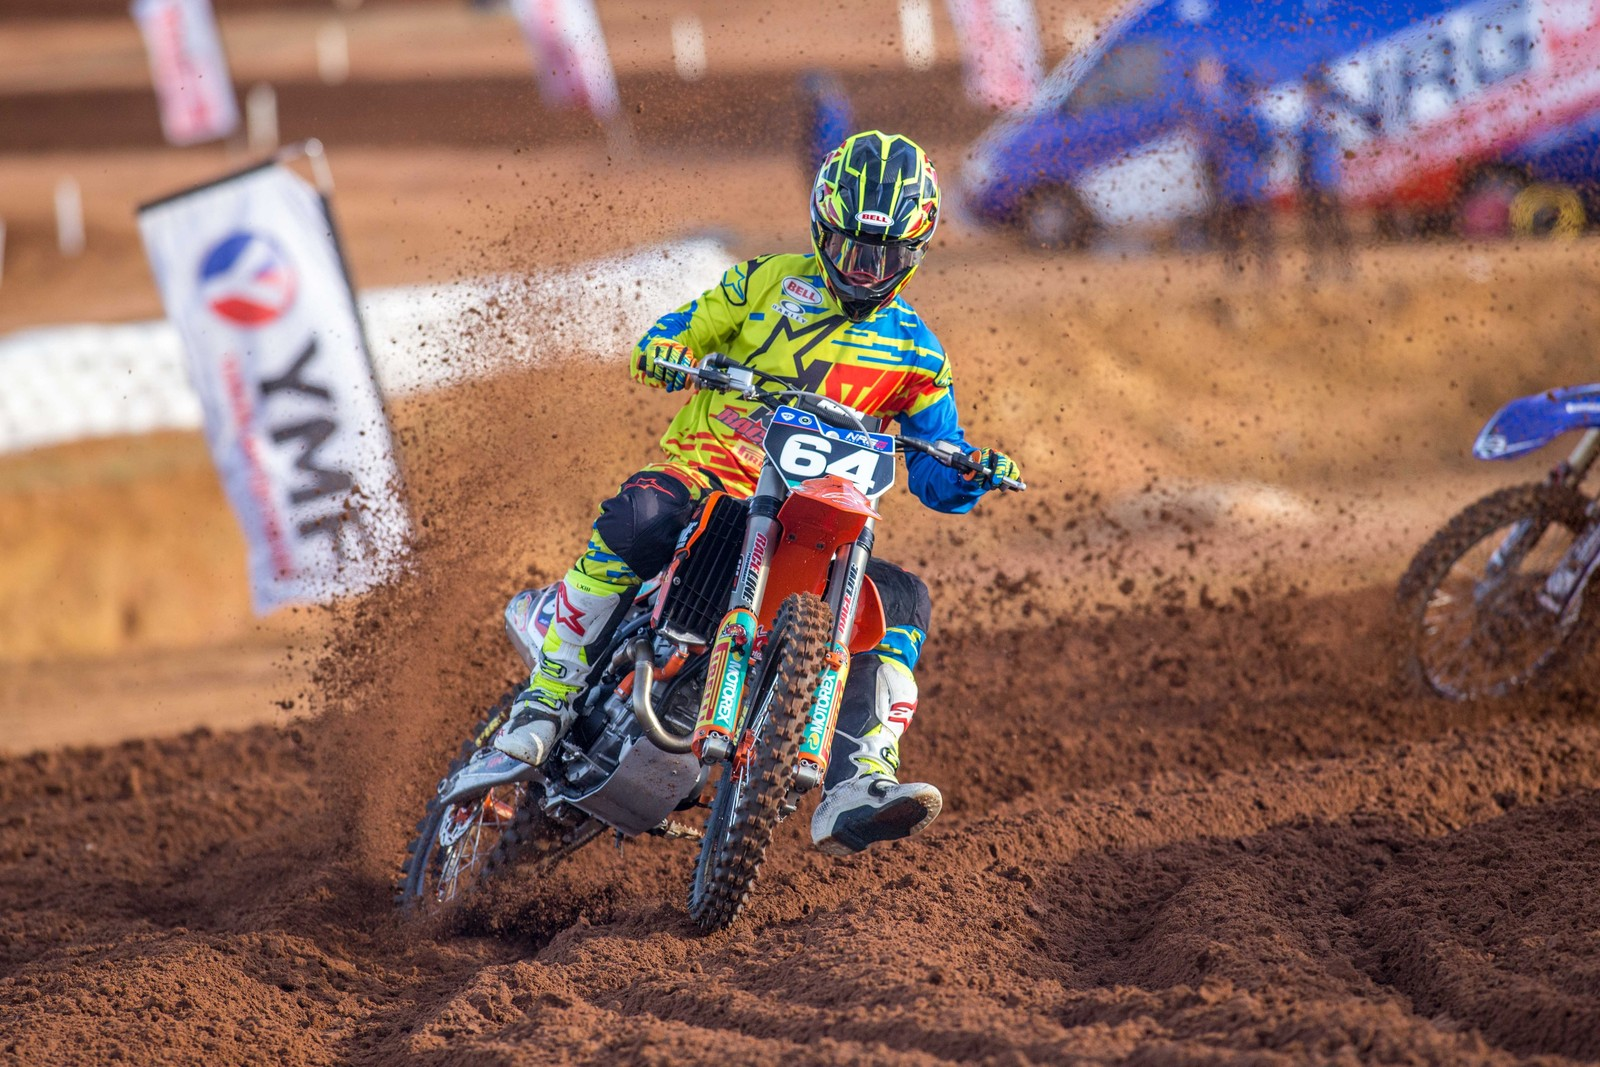 Dylan Wills - Australian Motul Mx Championships: Round 4, Murray Bridge - Motocross Pictures - Vital MX